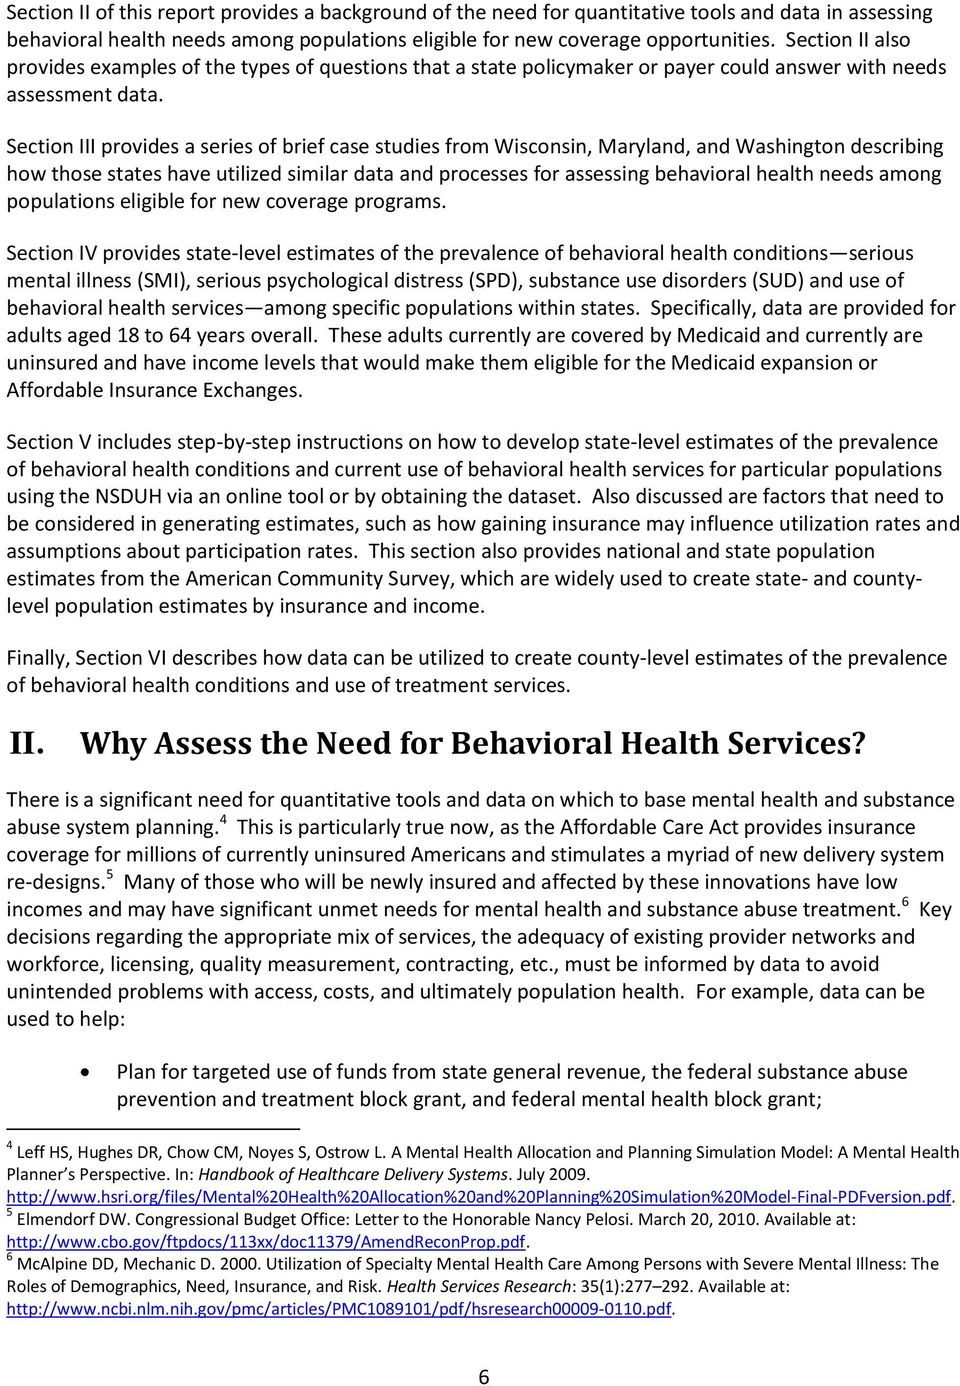 Section III provides a series of brief case studies from Wisconsin, Maryland, and Washington describing how those states have utilized similar data and processes for assessing behavioral health needs